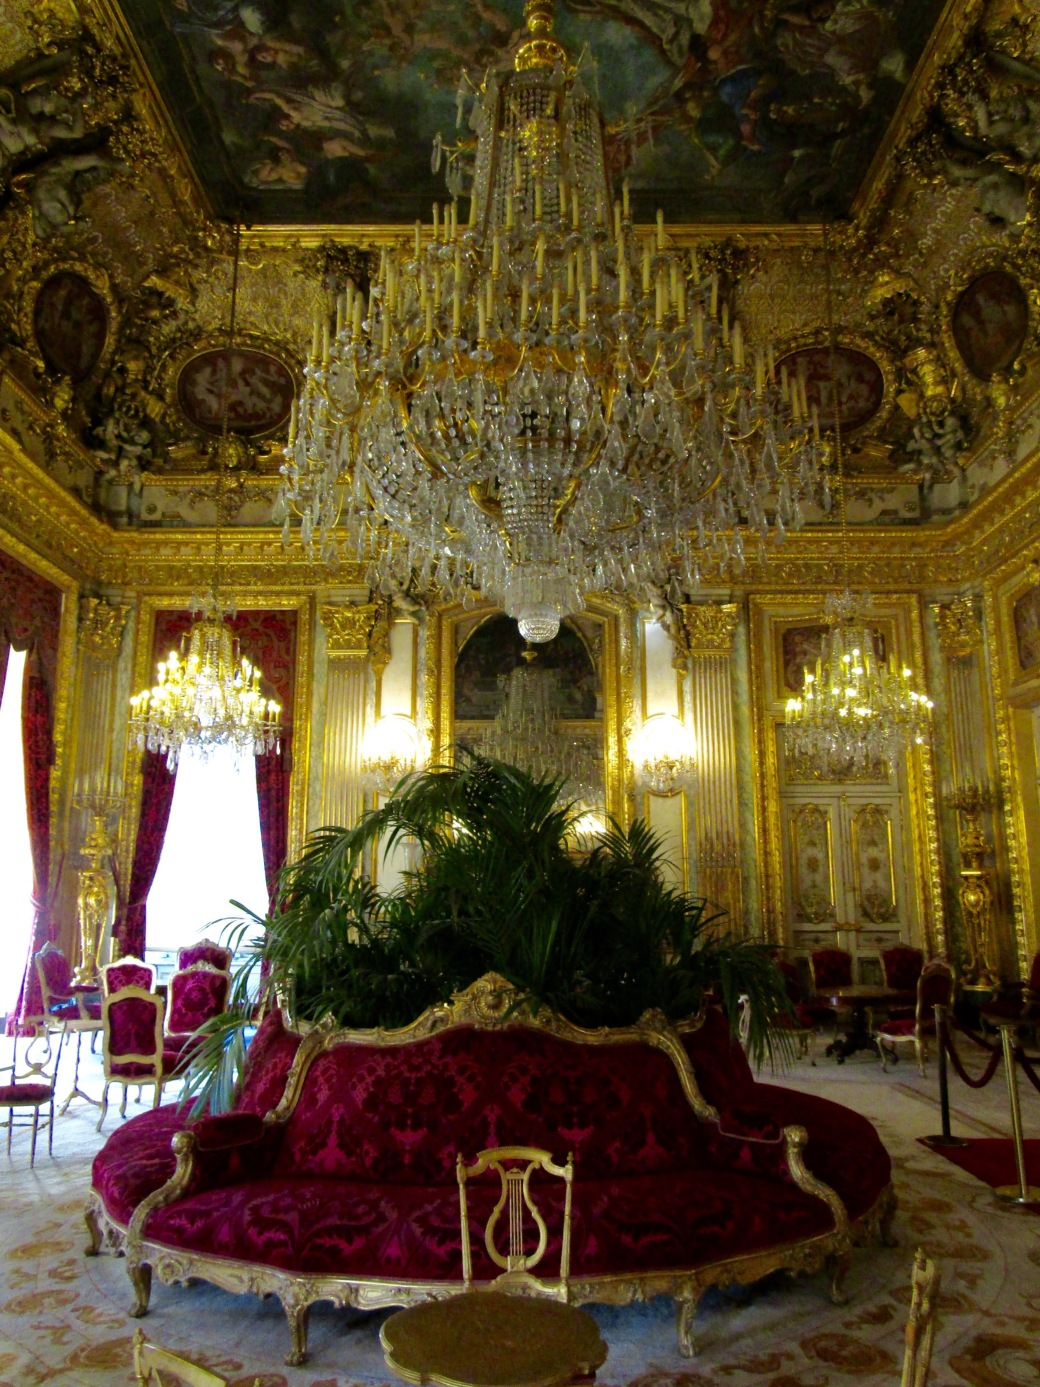 A re-creation of several rooms of Napoleon's apartment has been built in great detail at the Louvre. The parlor was among the most ornate rooms on display.